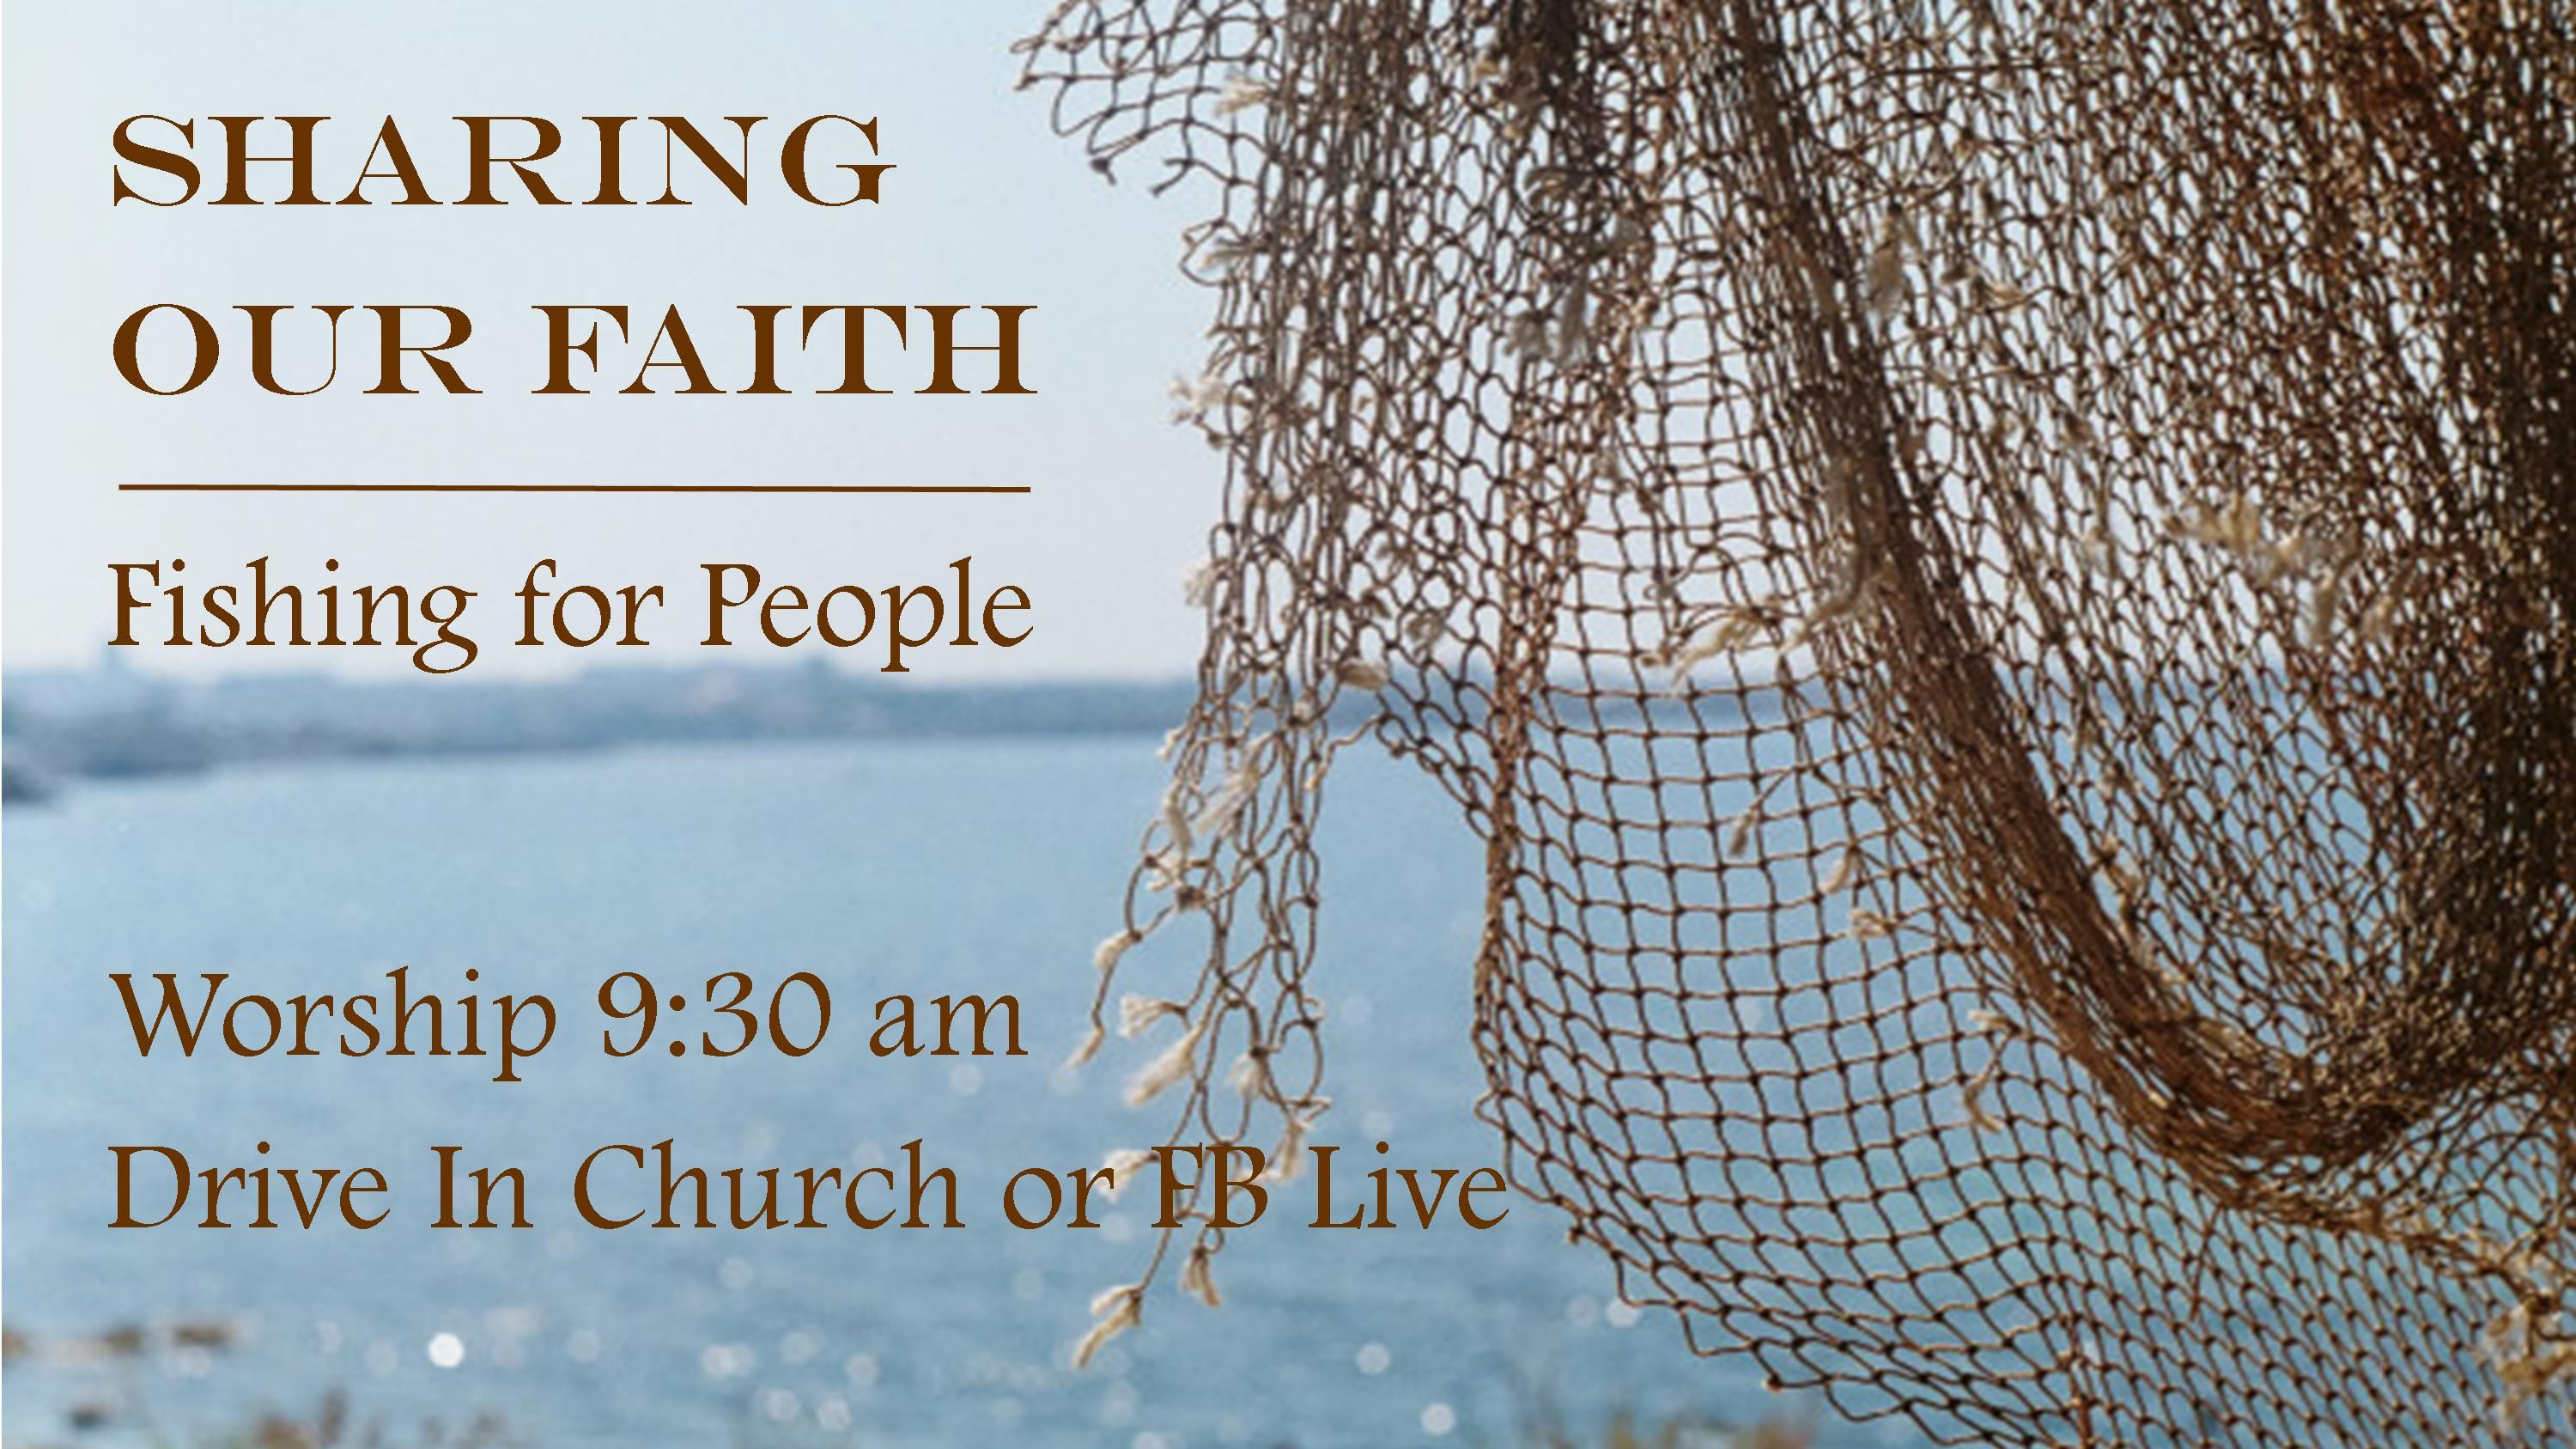 Sharing Our Faith 2 Worship Slide